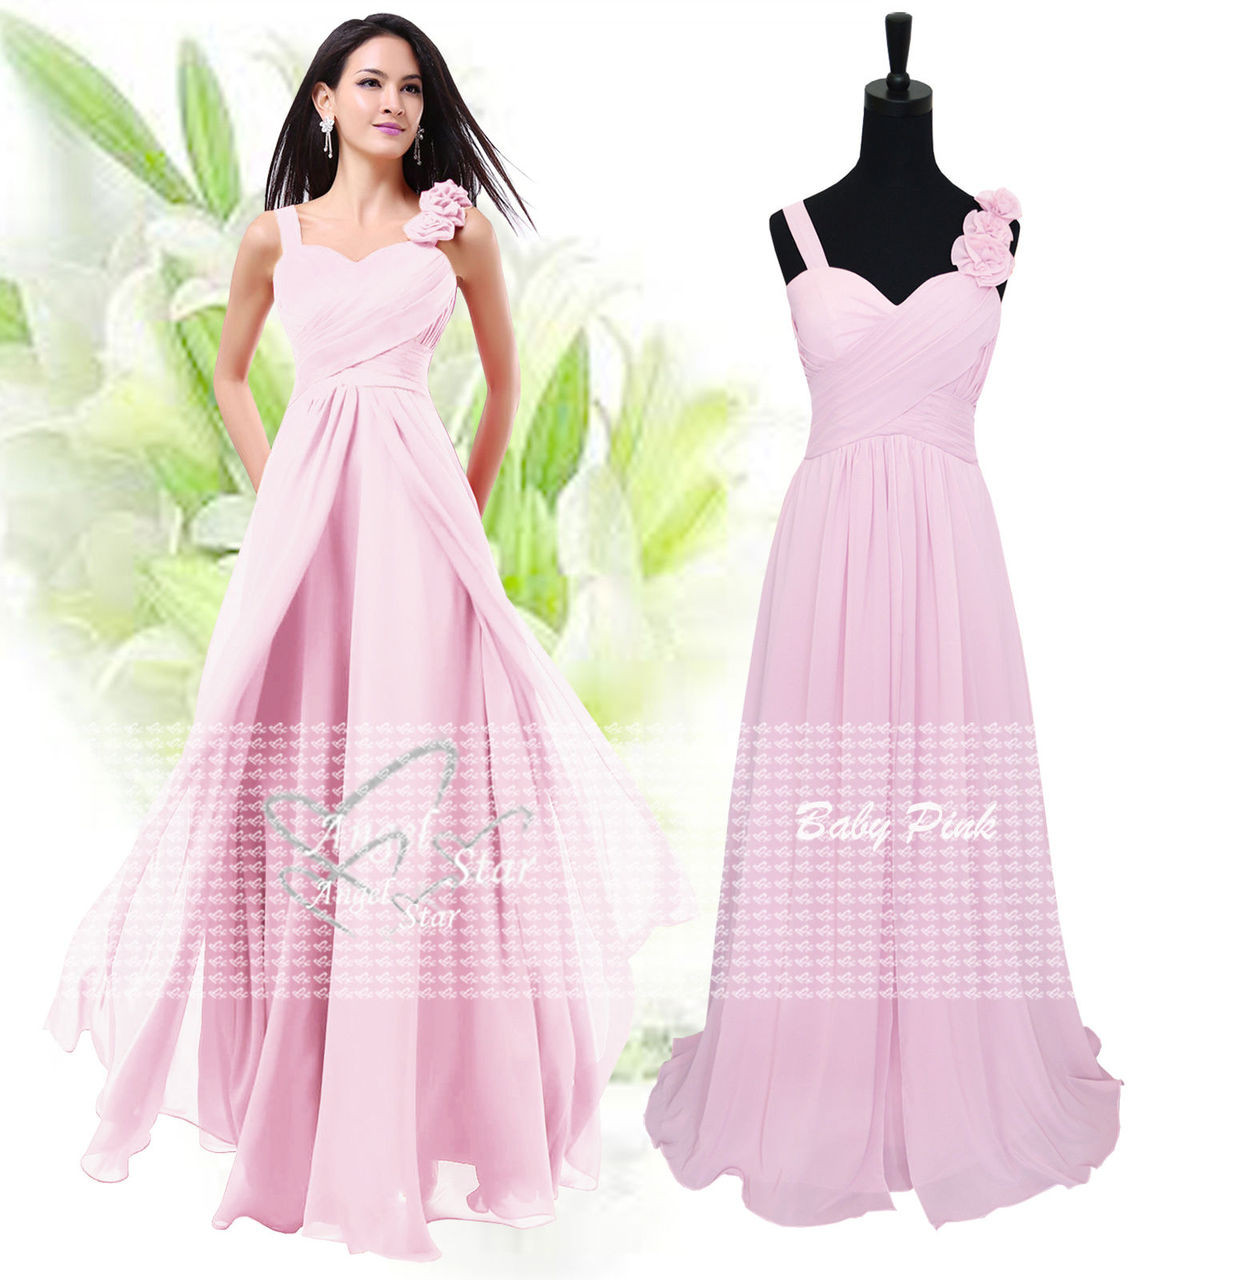 00bd286efecc New Formal Long Evening Ball Gown Party Prom Bridesmaid Dress Size 6 ...